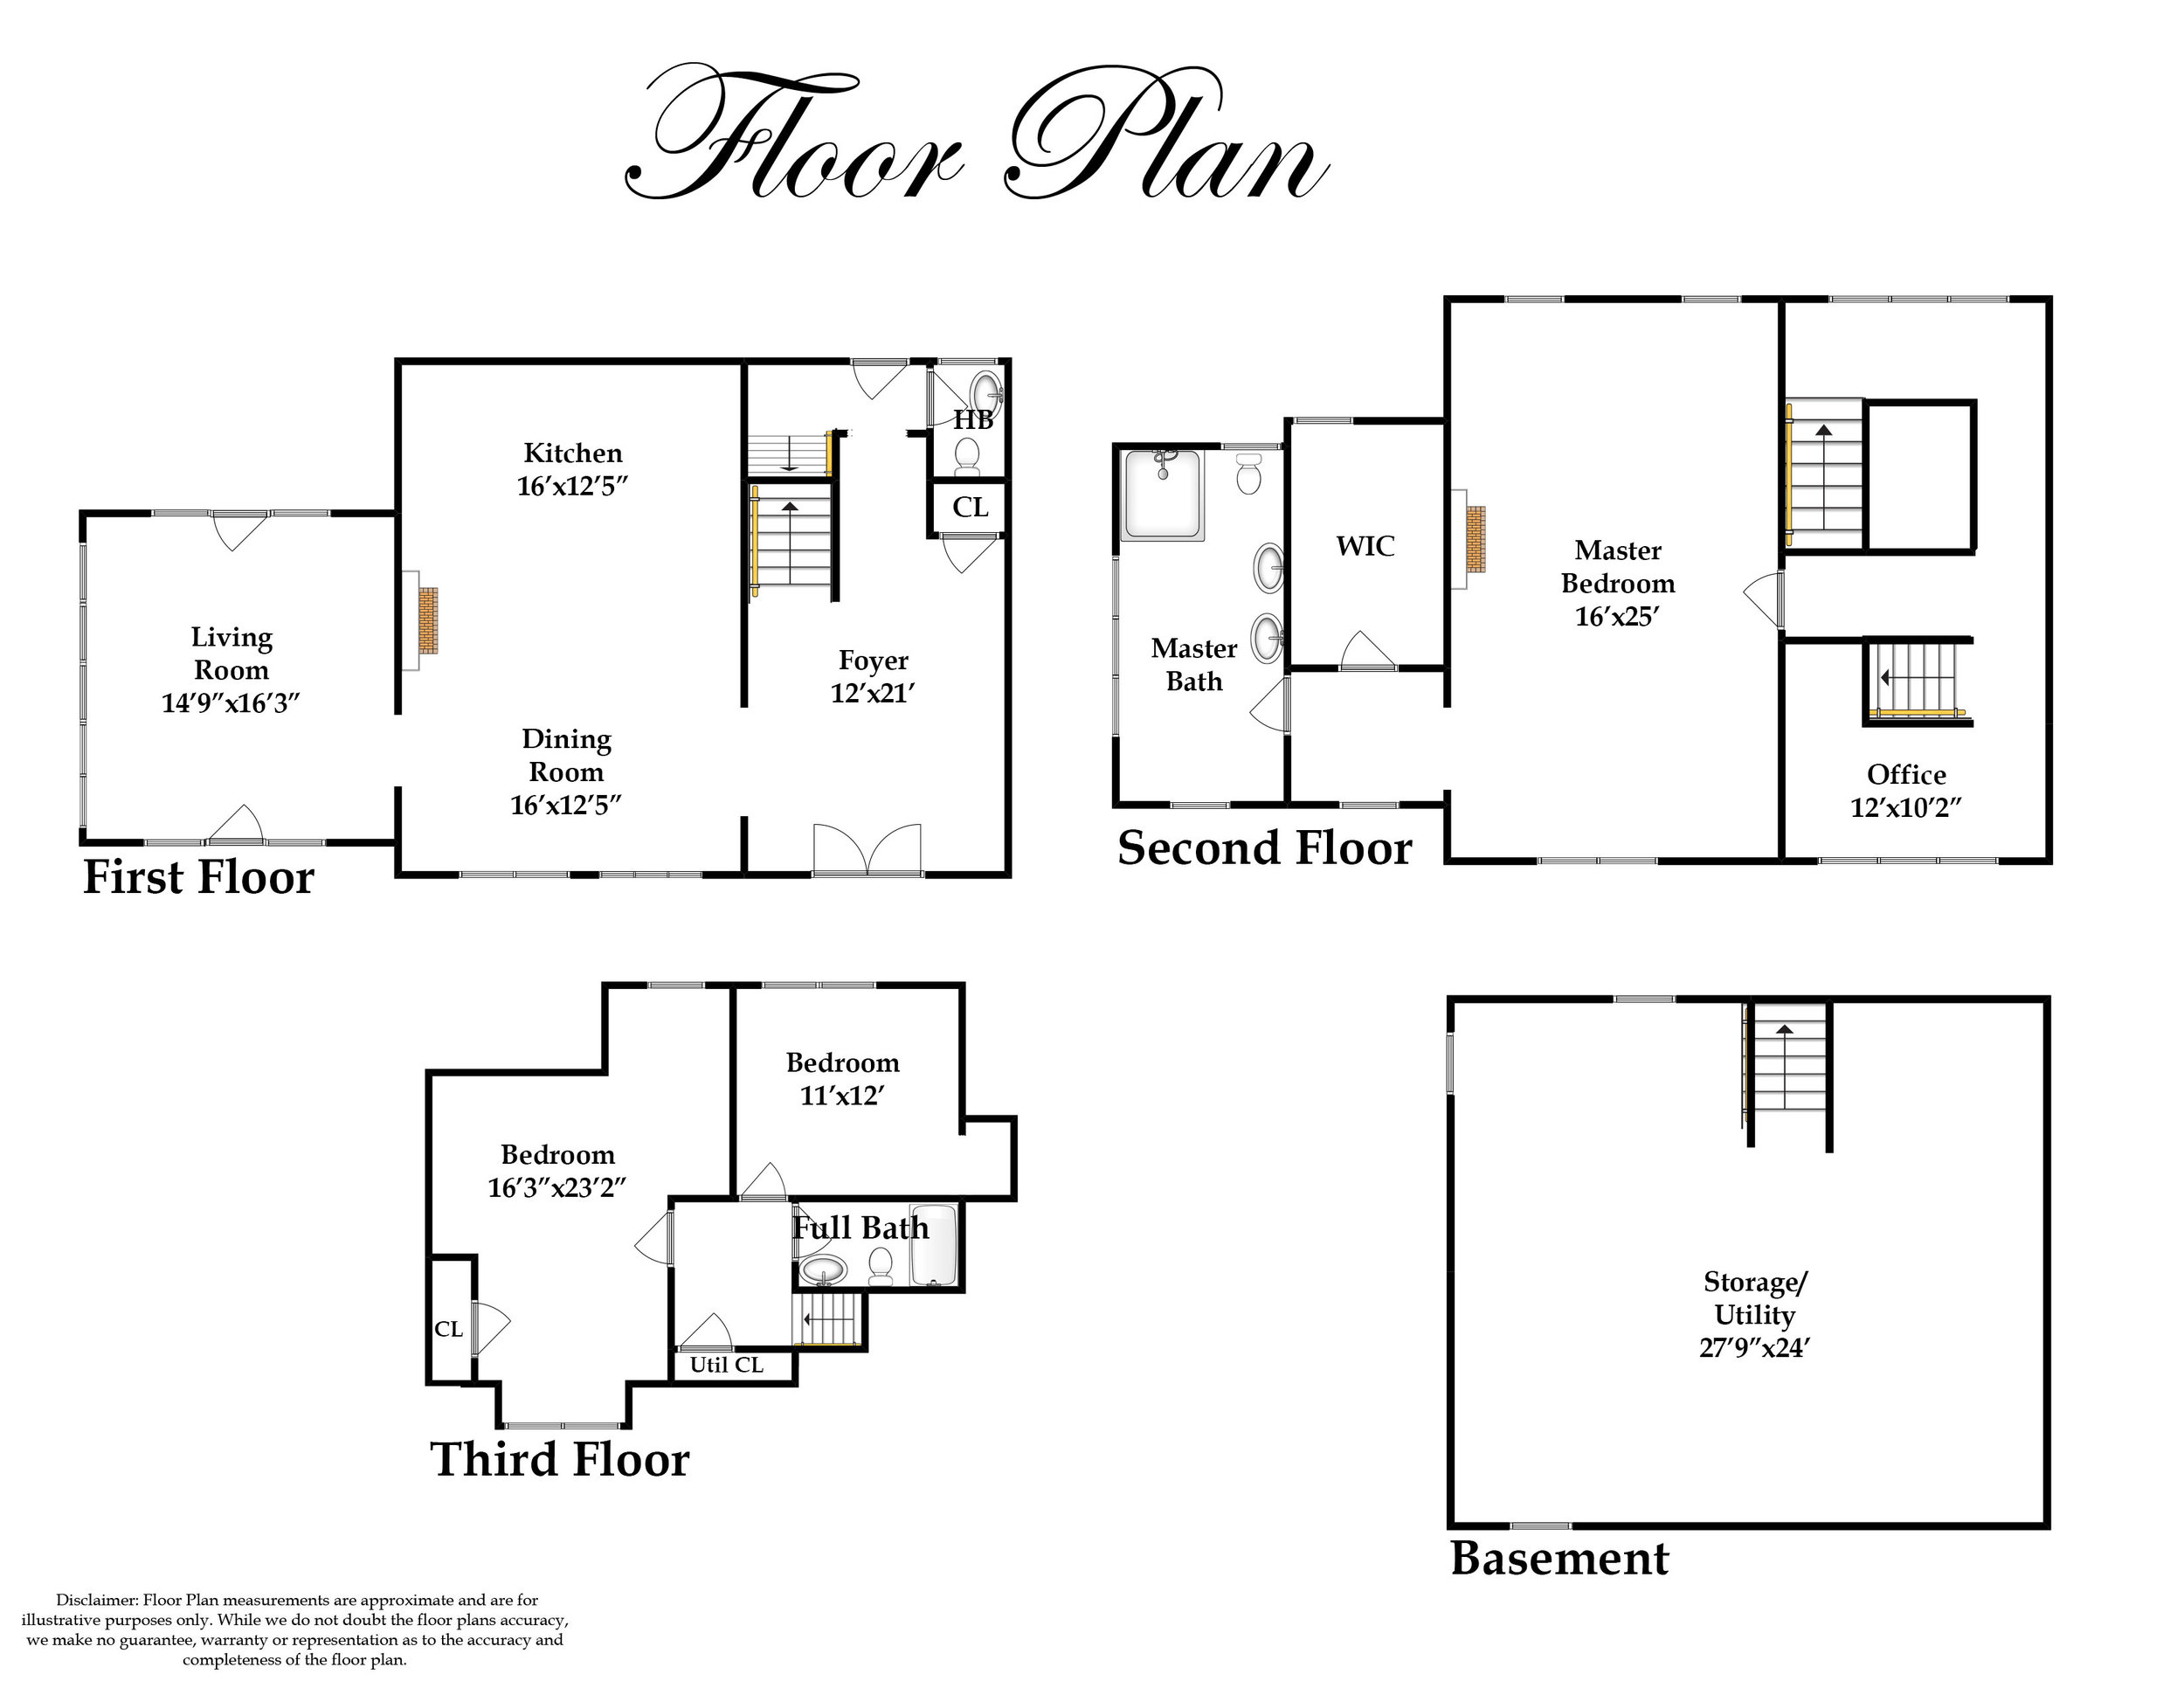 41 plymouth unit A floor layouts.jpg